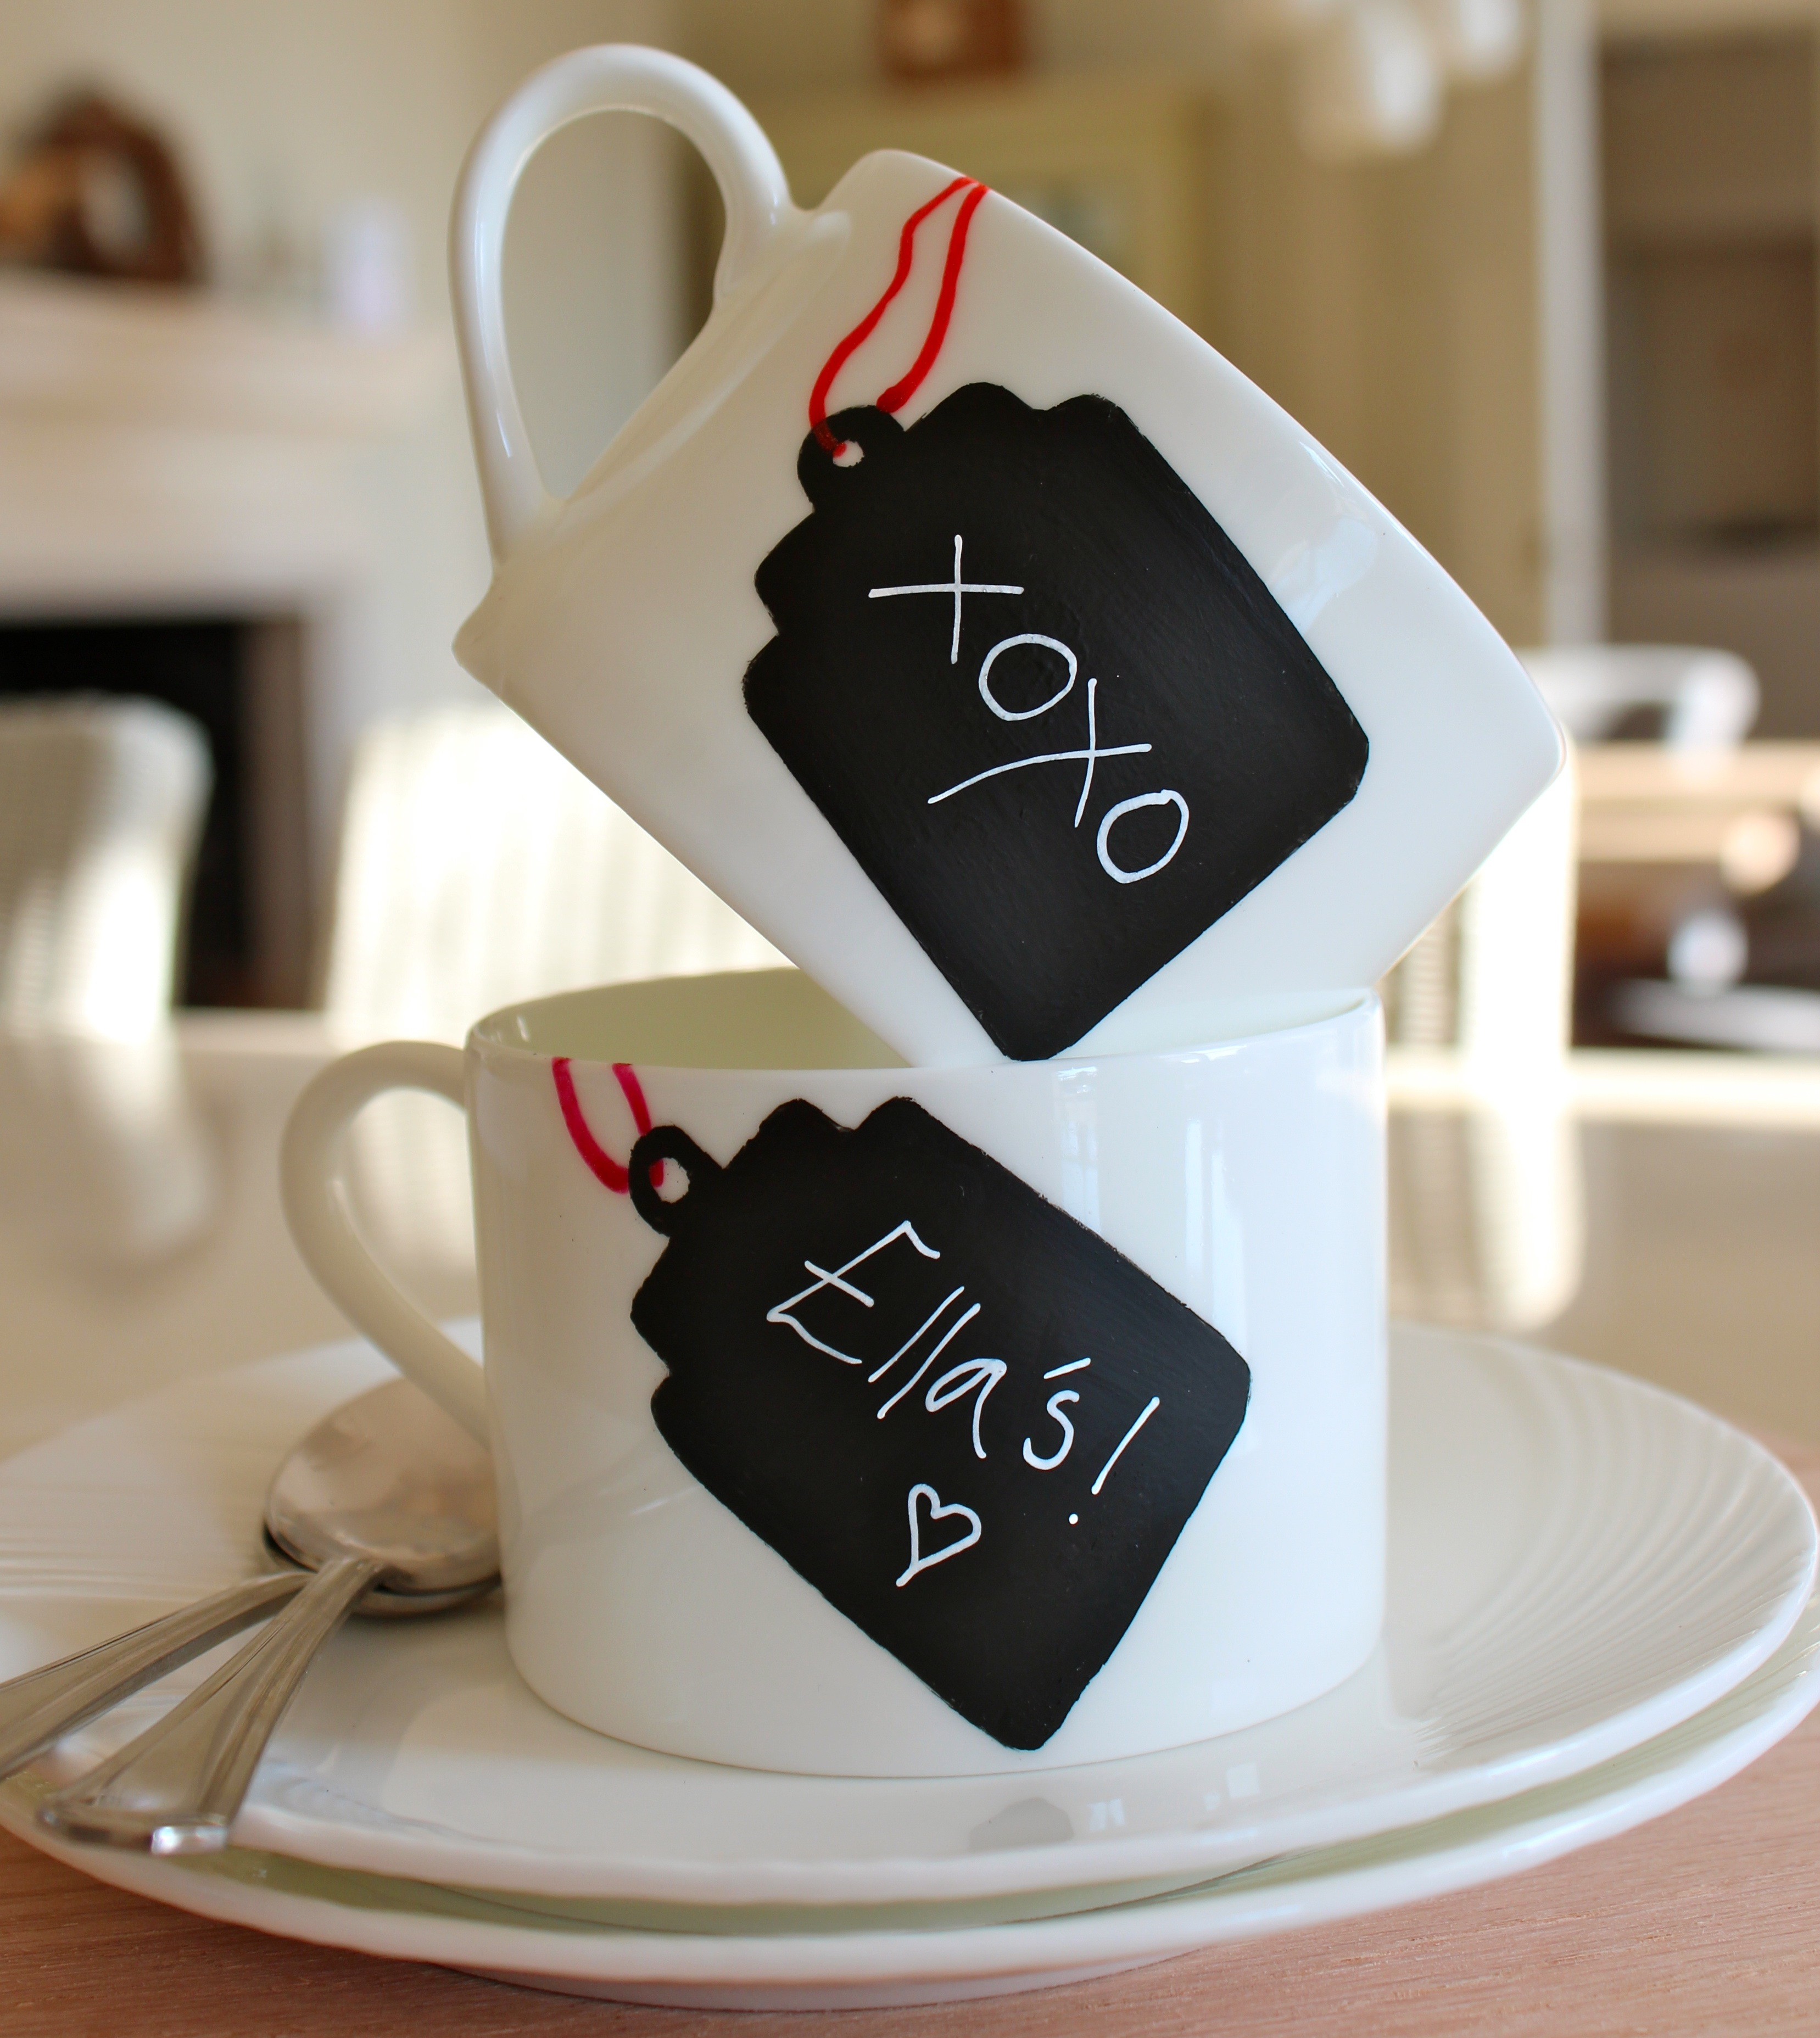 DIY chalkboard tag mugs for Valentine's Day